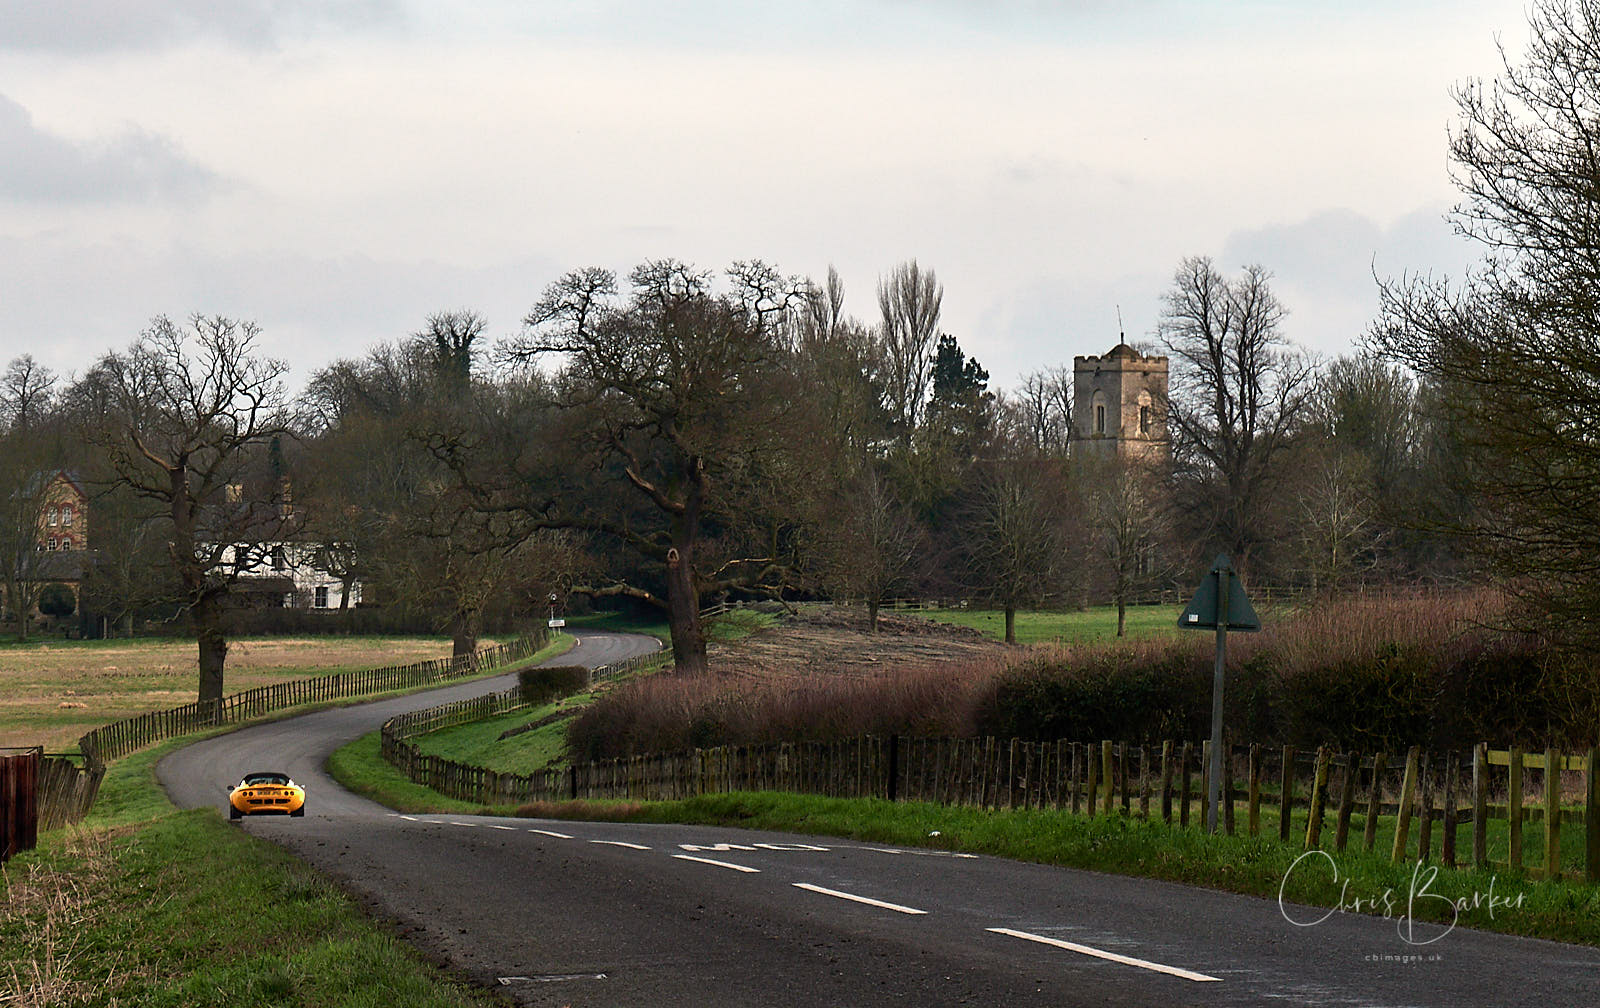 A yellow sports car on a road into a rural village with church tower visible